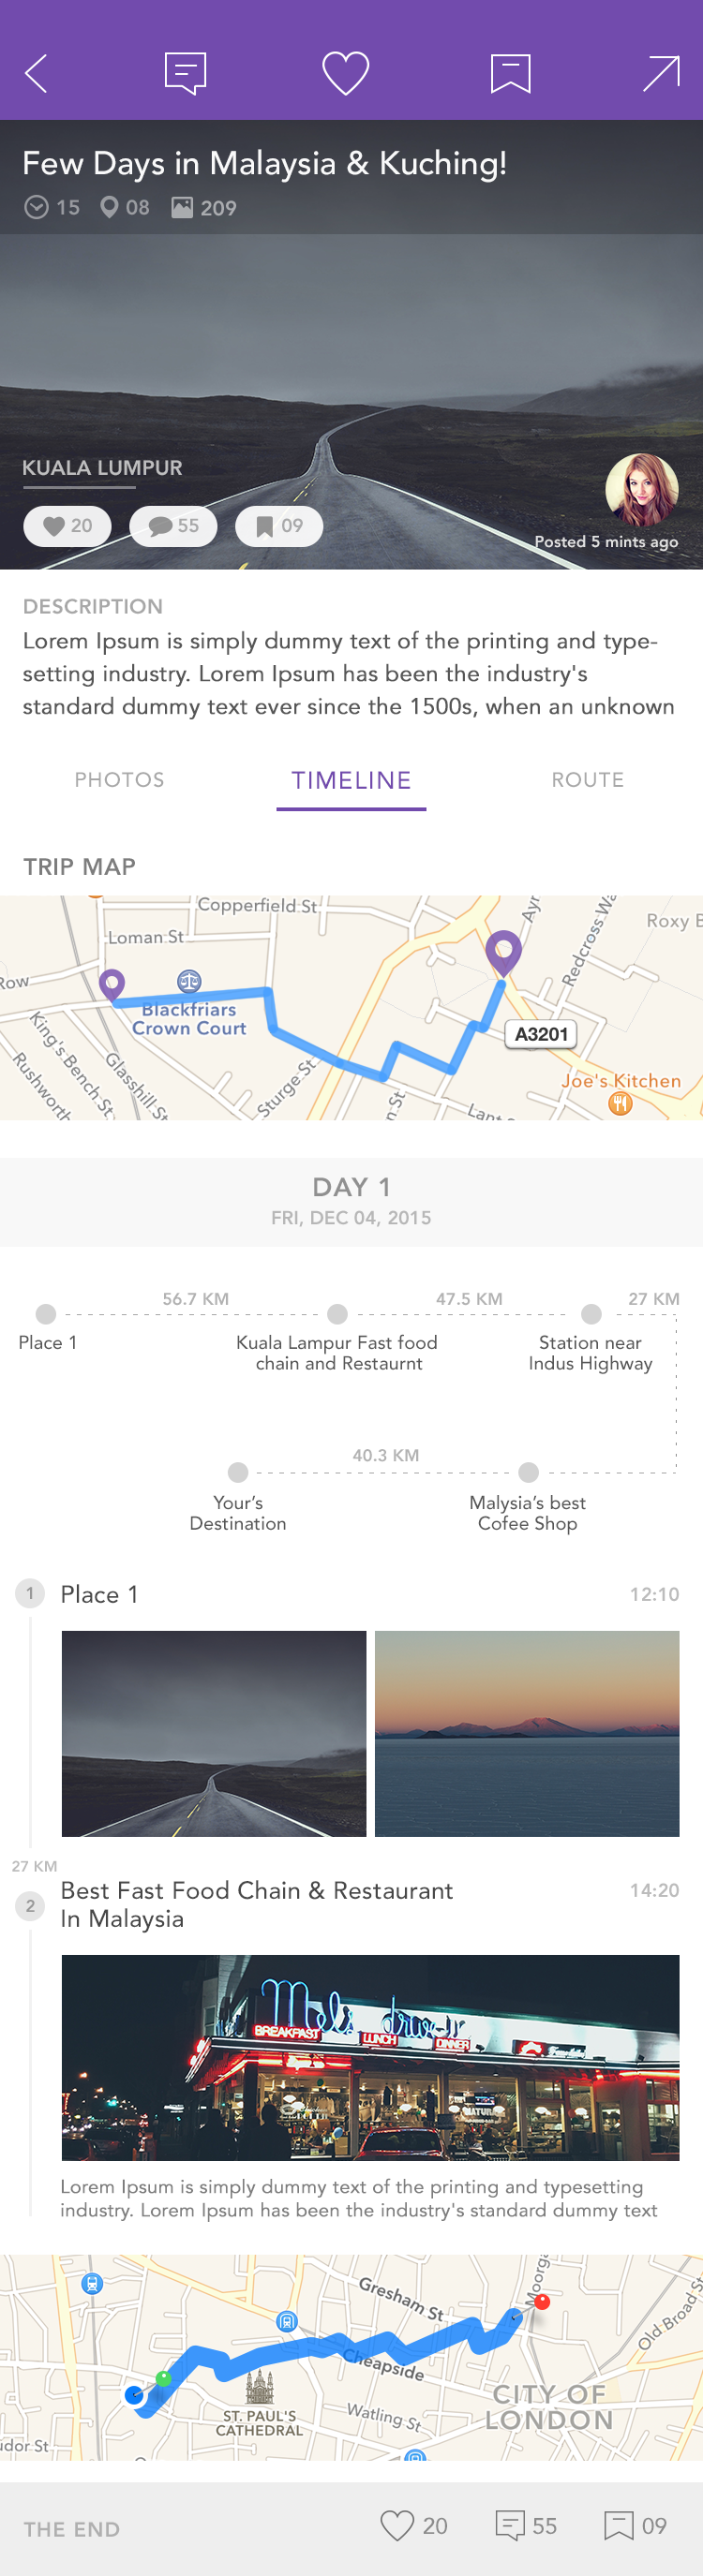 Create a highly visual (route & photo based) travel journal app for iOS devices